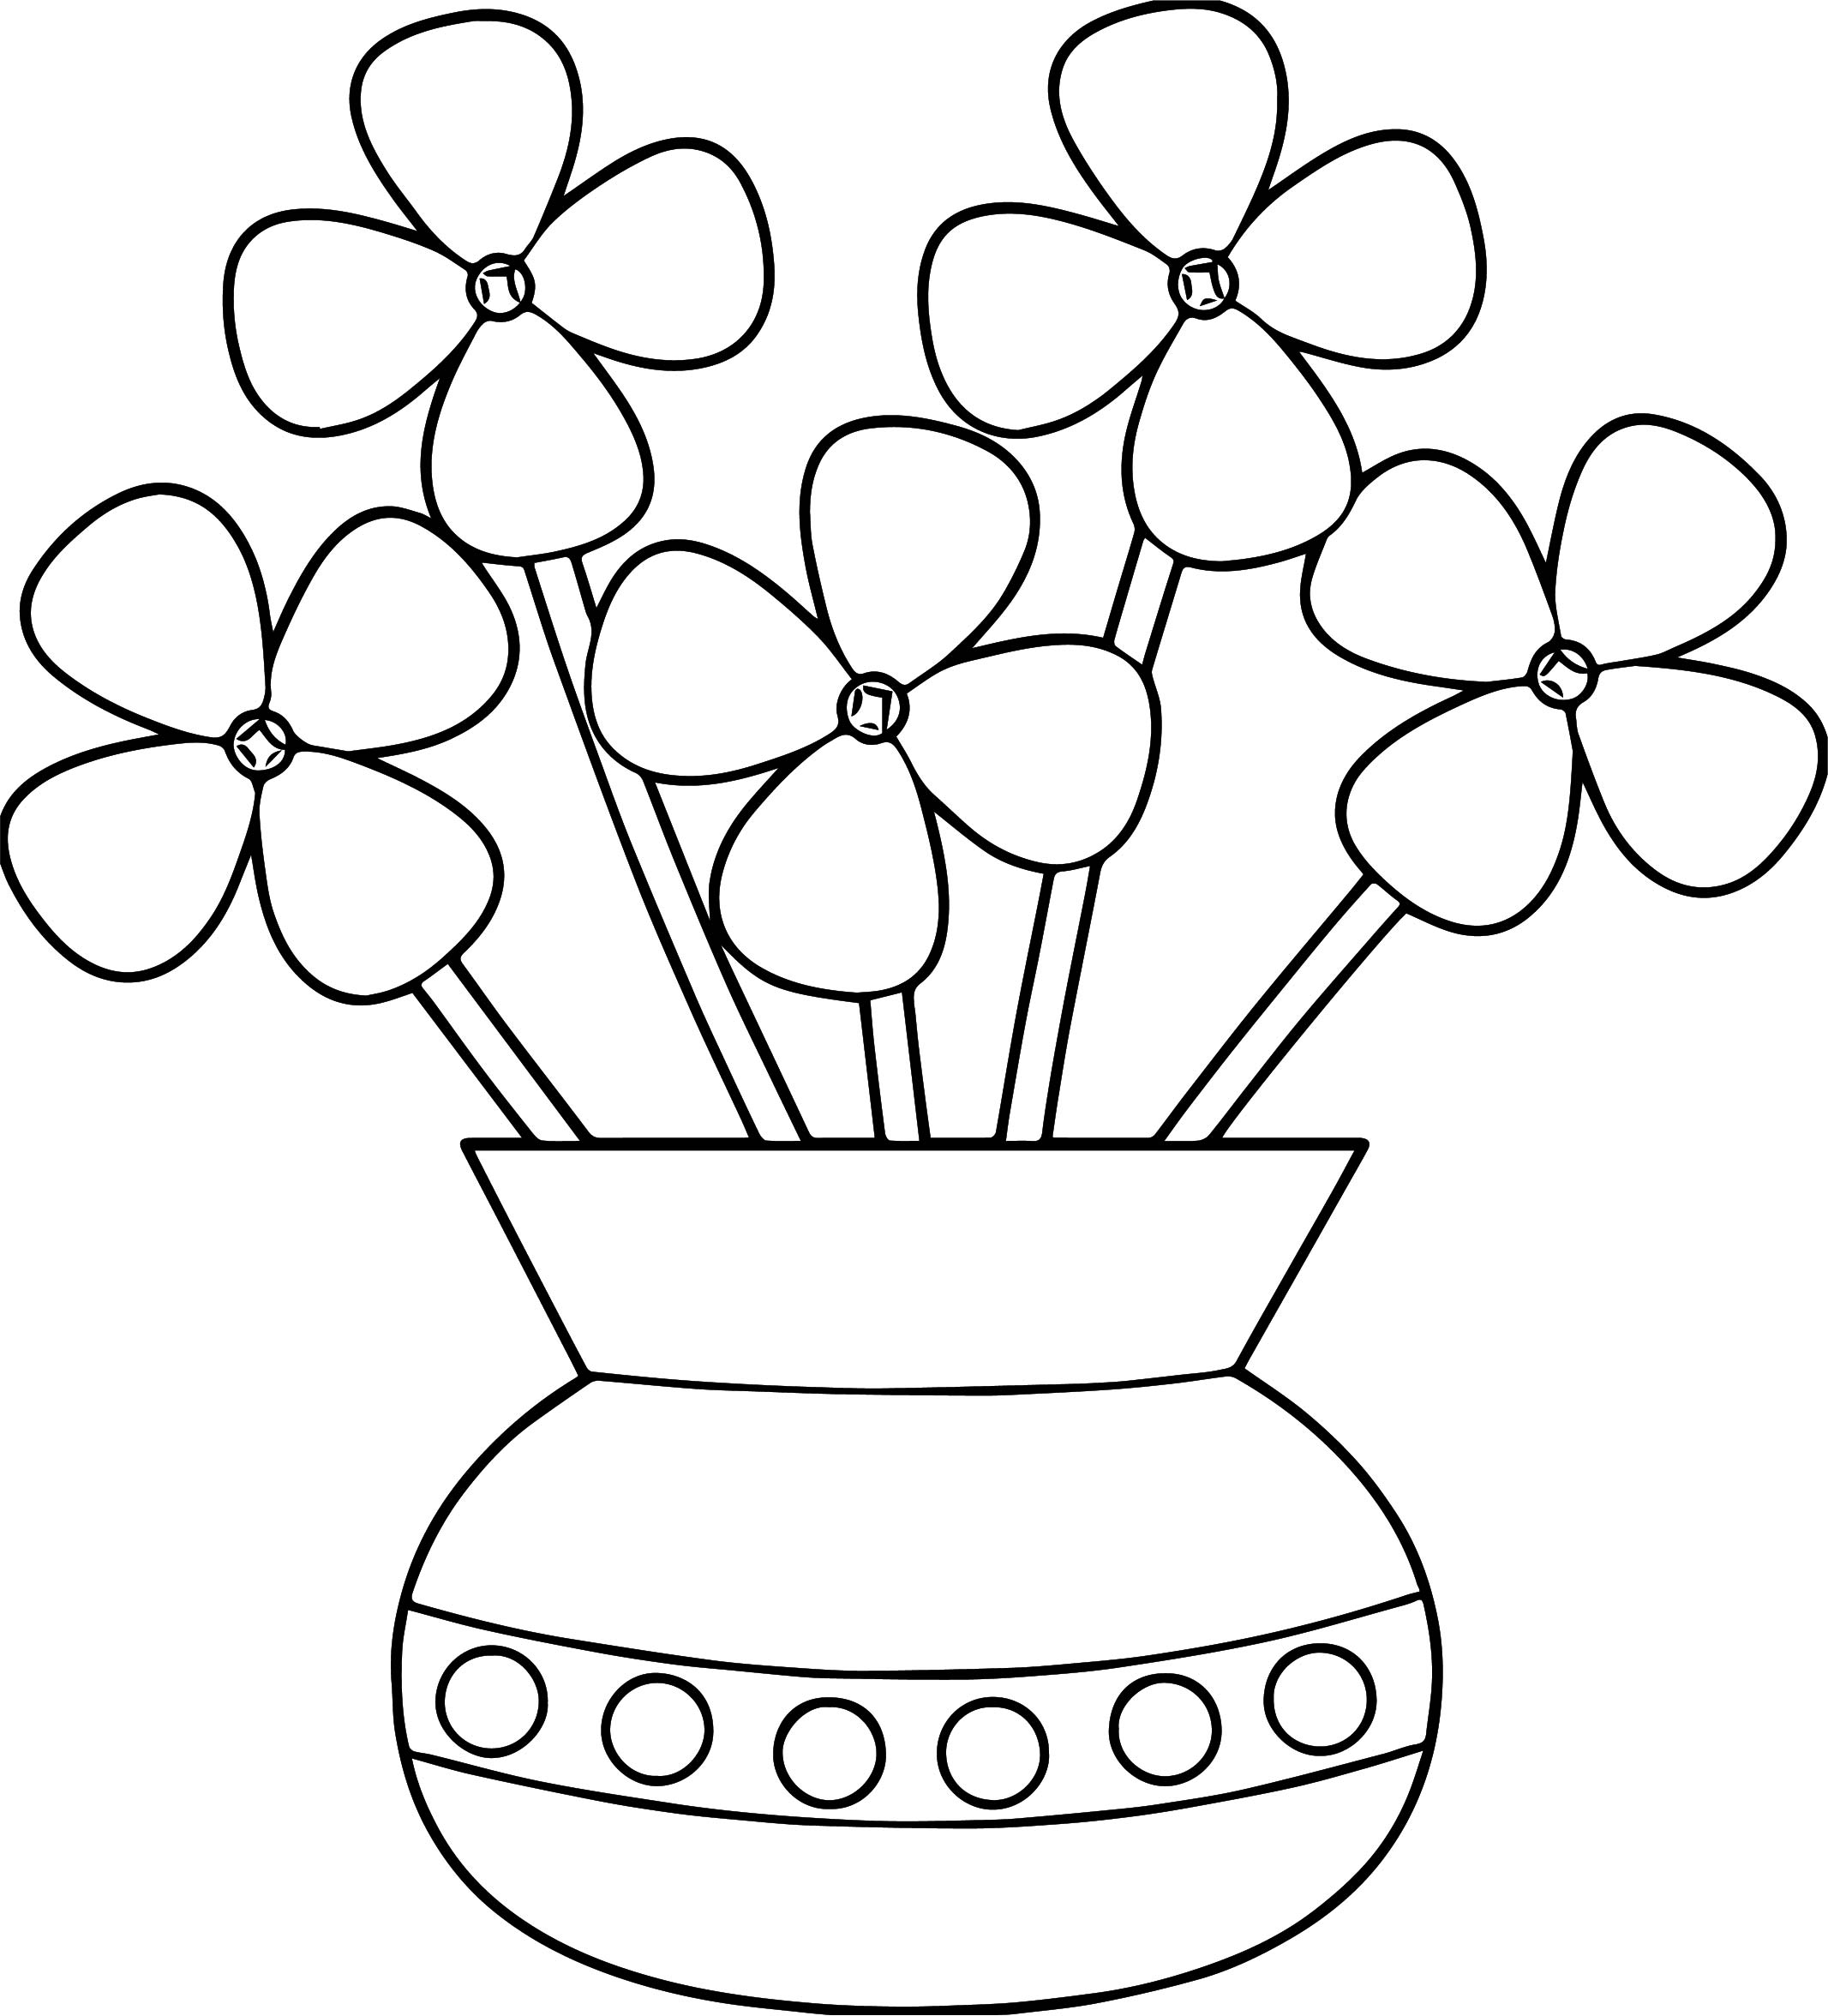 Flowerpot flower coloring page for Coloring pages of a flower